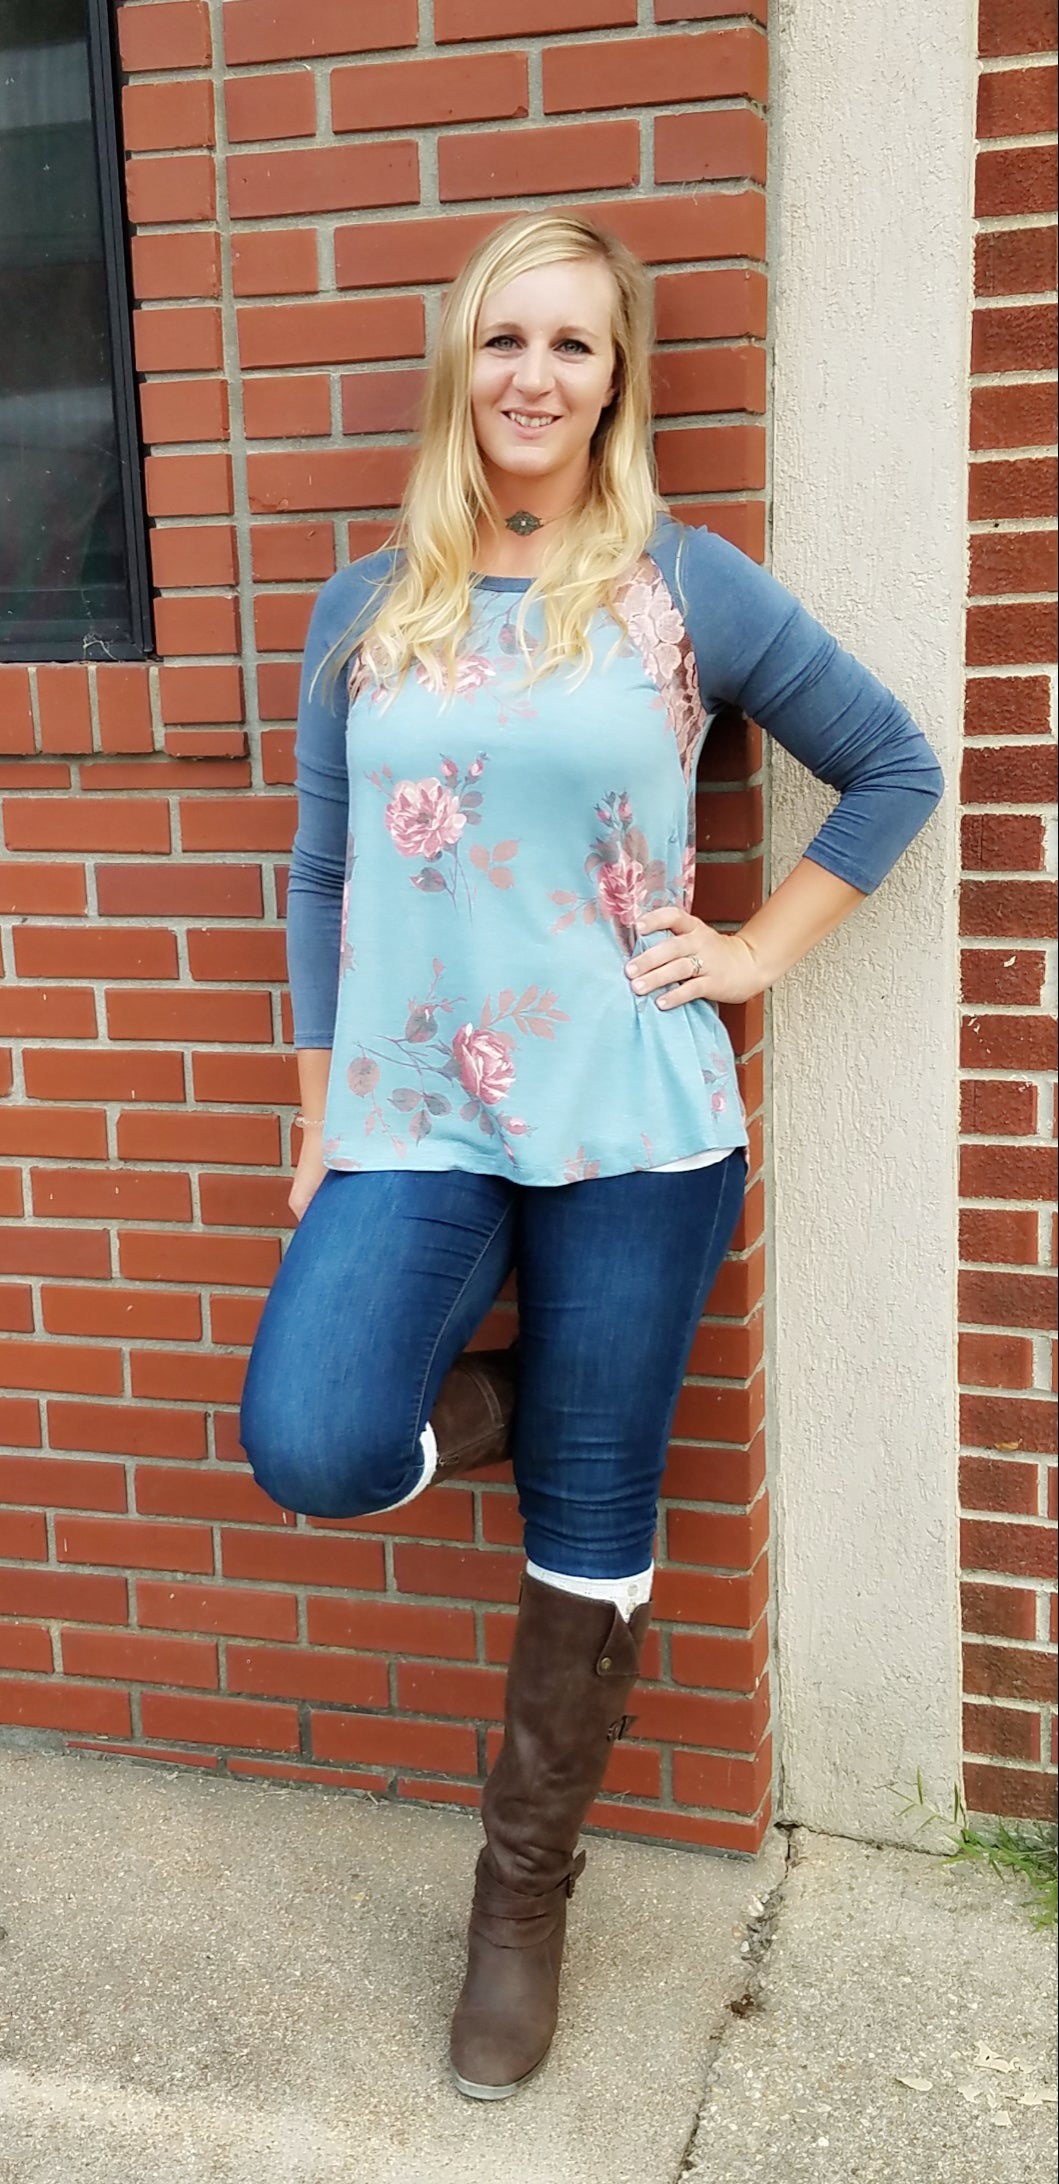 Sidney floral lace ragan top